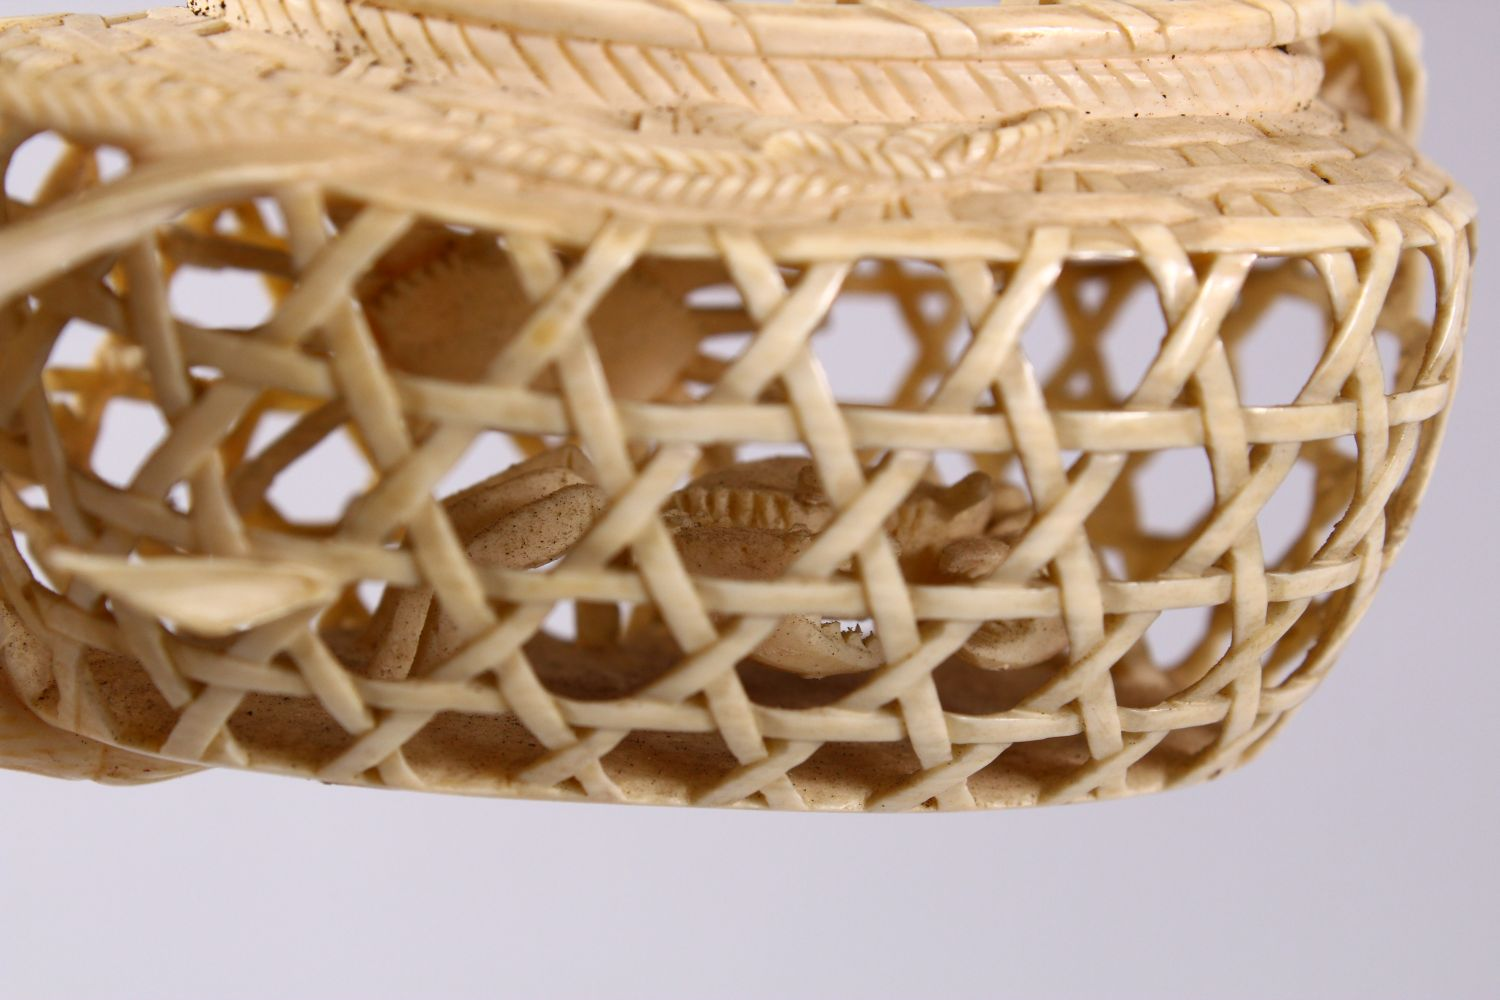 A JAPANESE MEIJI PERIOD CARVED IVORY CRAB GROUP OKIMONO - depicting a basket of crabs with three - Image 10 of 11